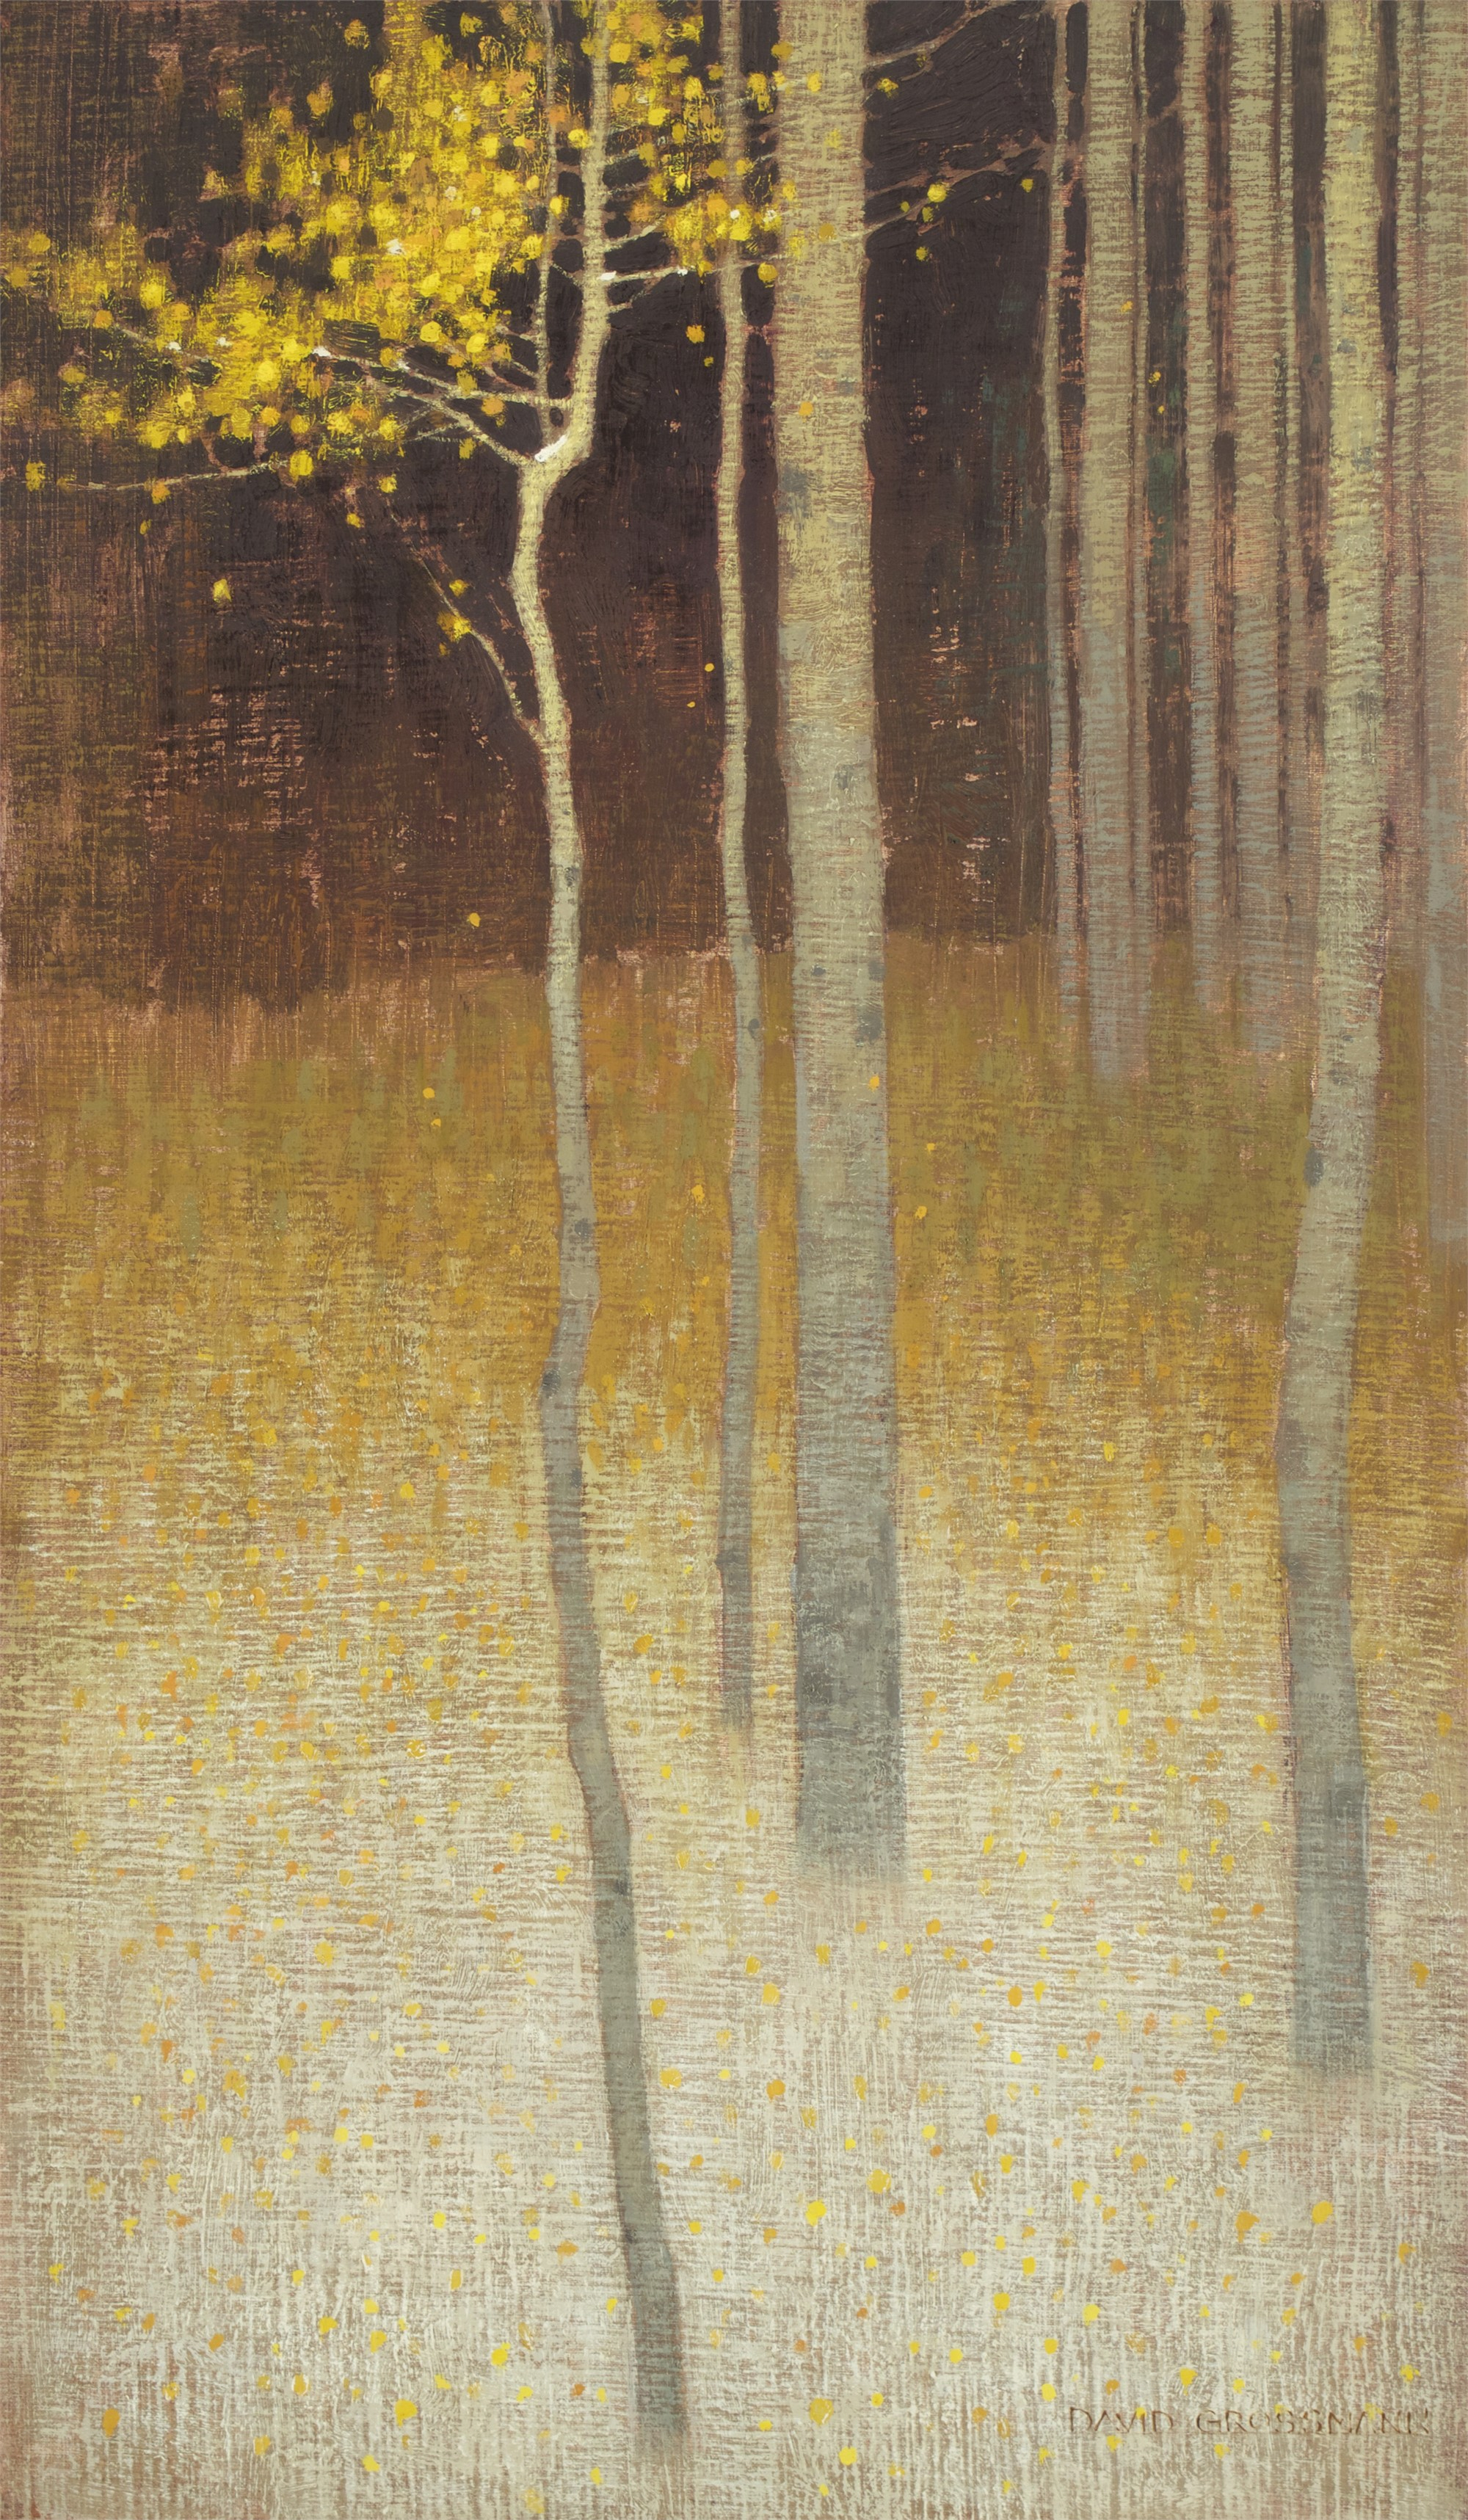 Last Leaves and First Snow by David Grossmann